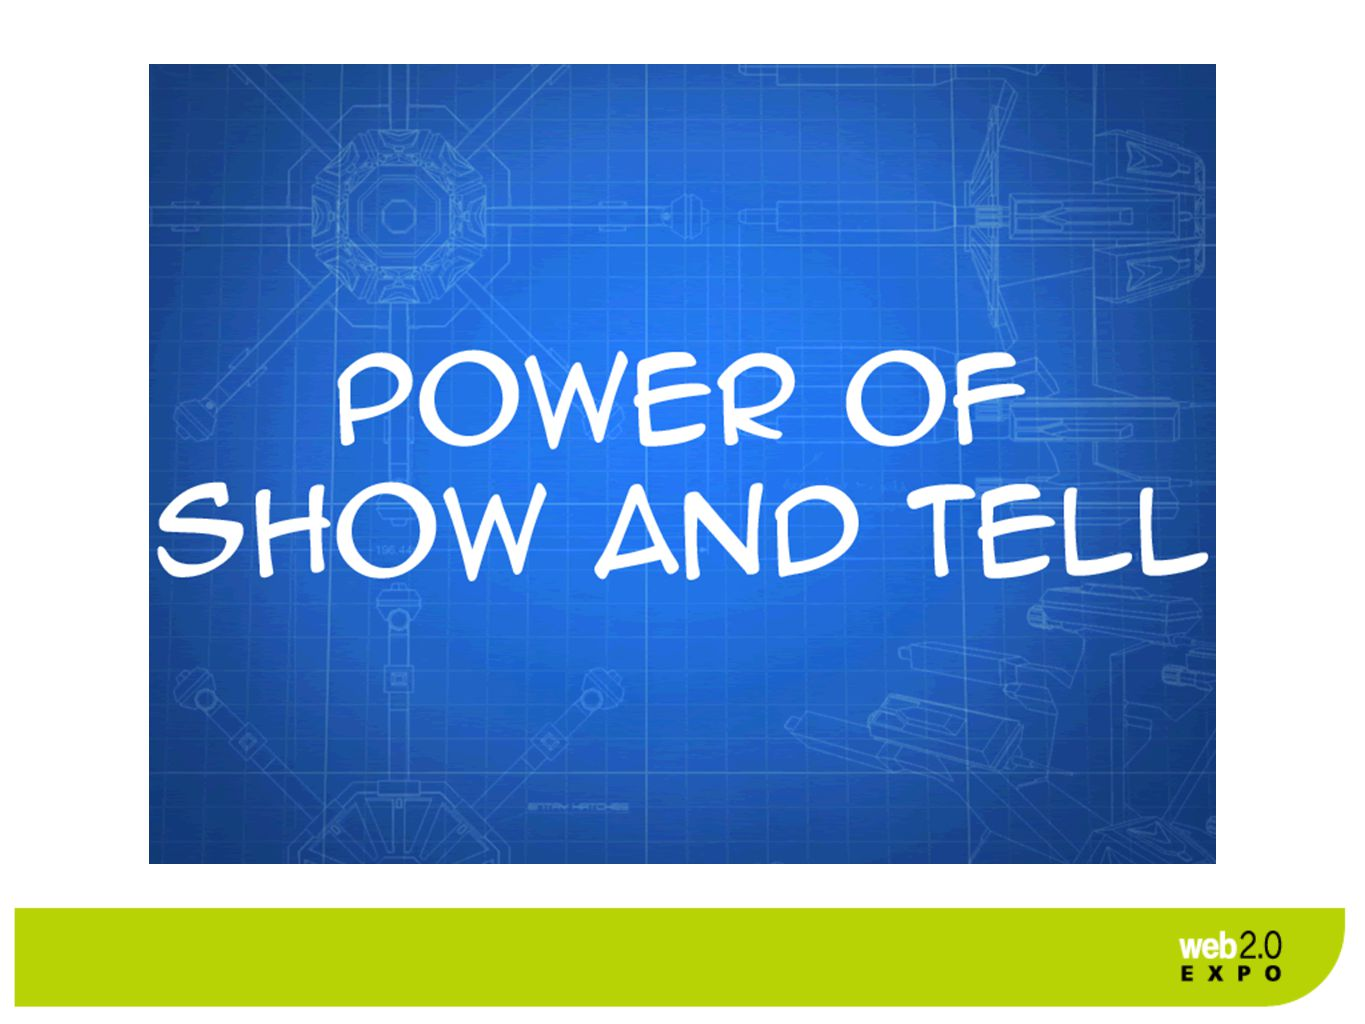 Power of Show and Tell